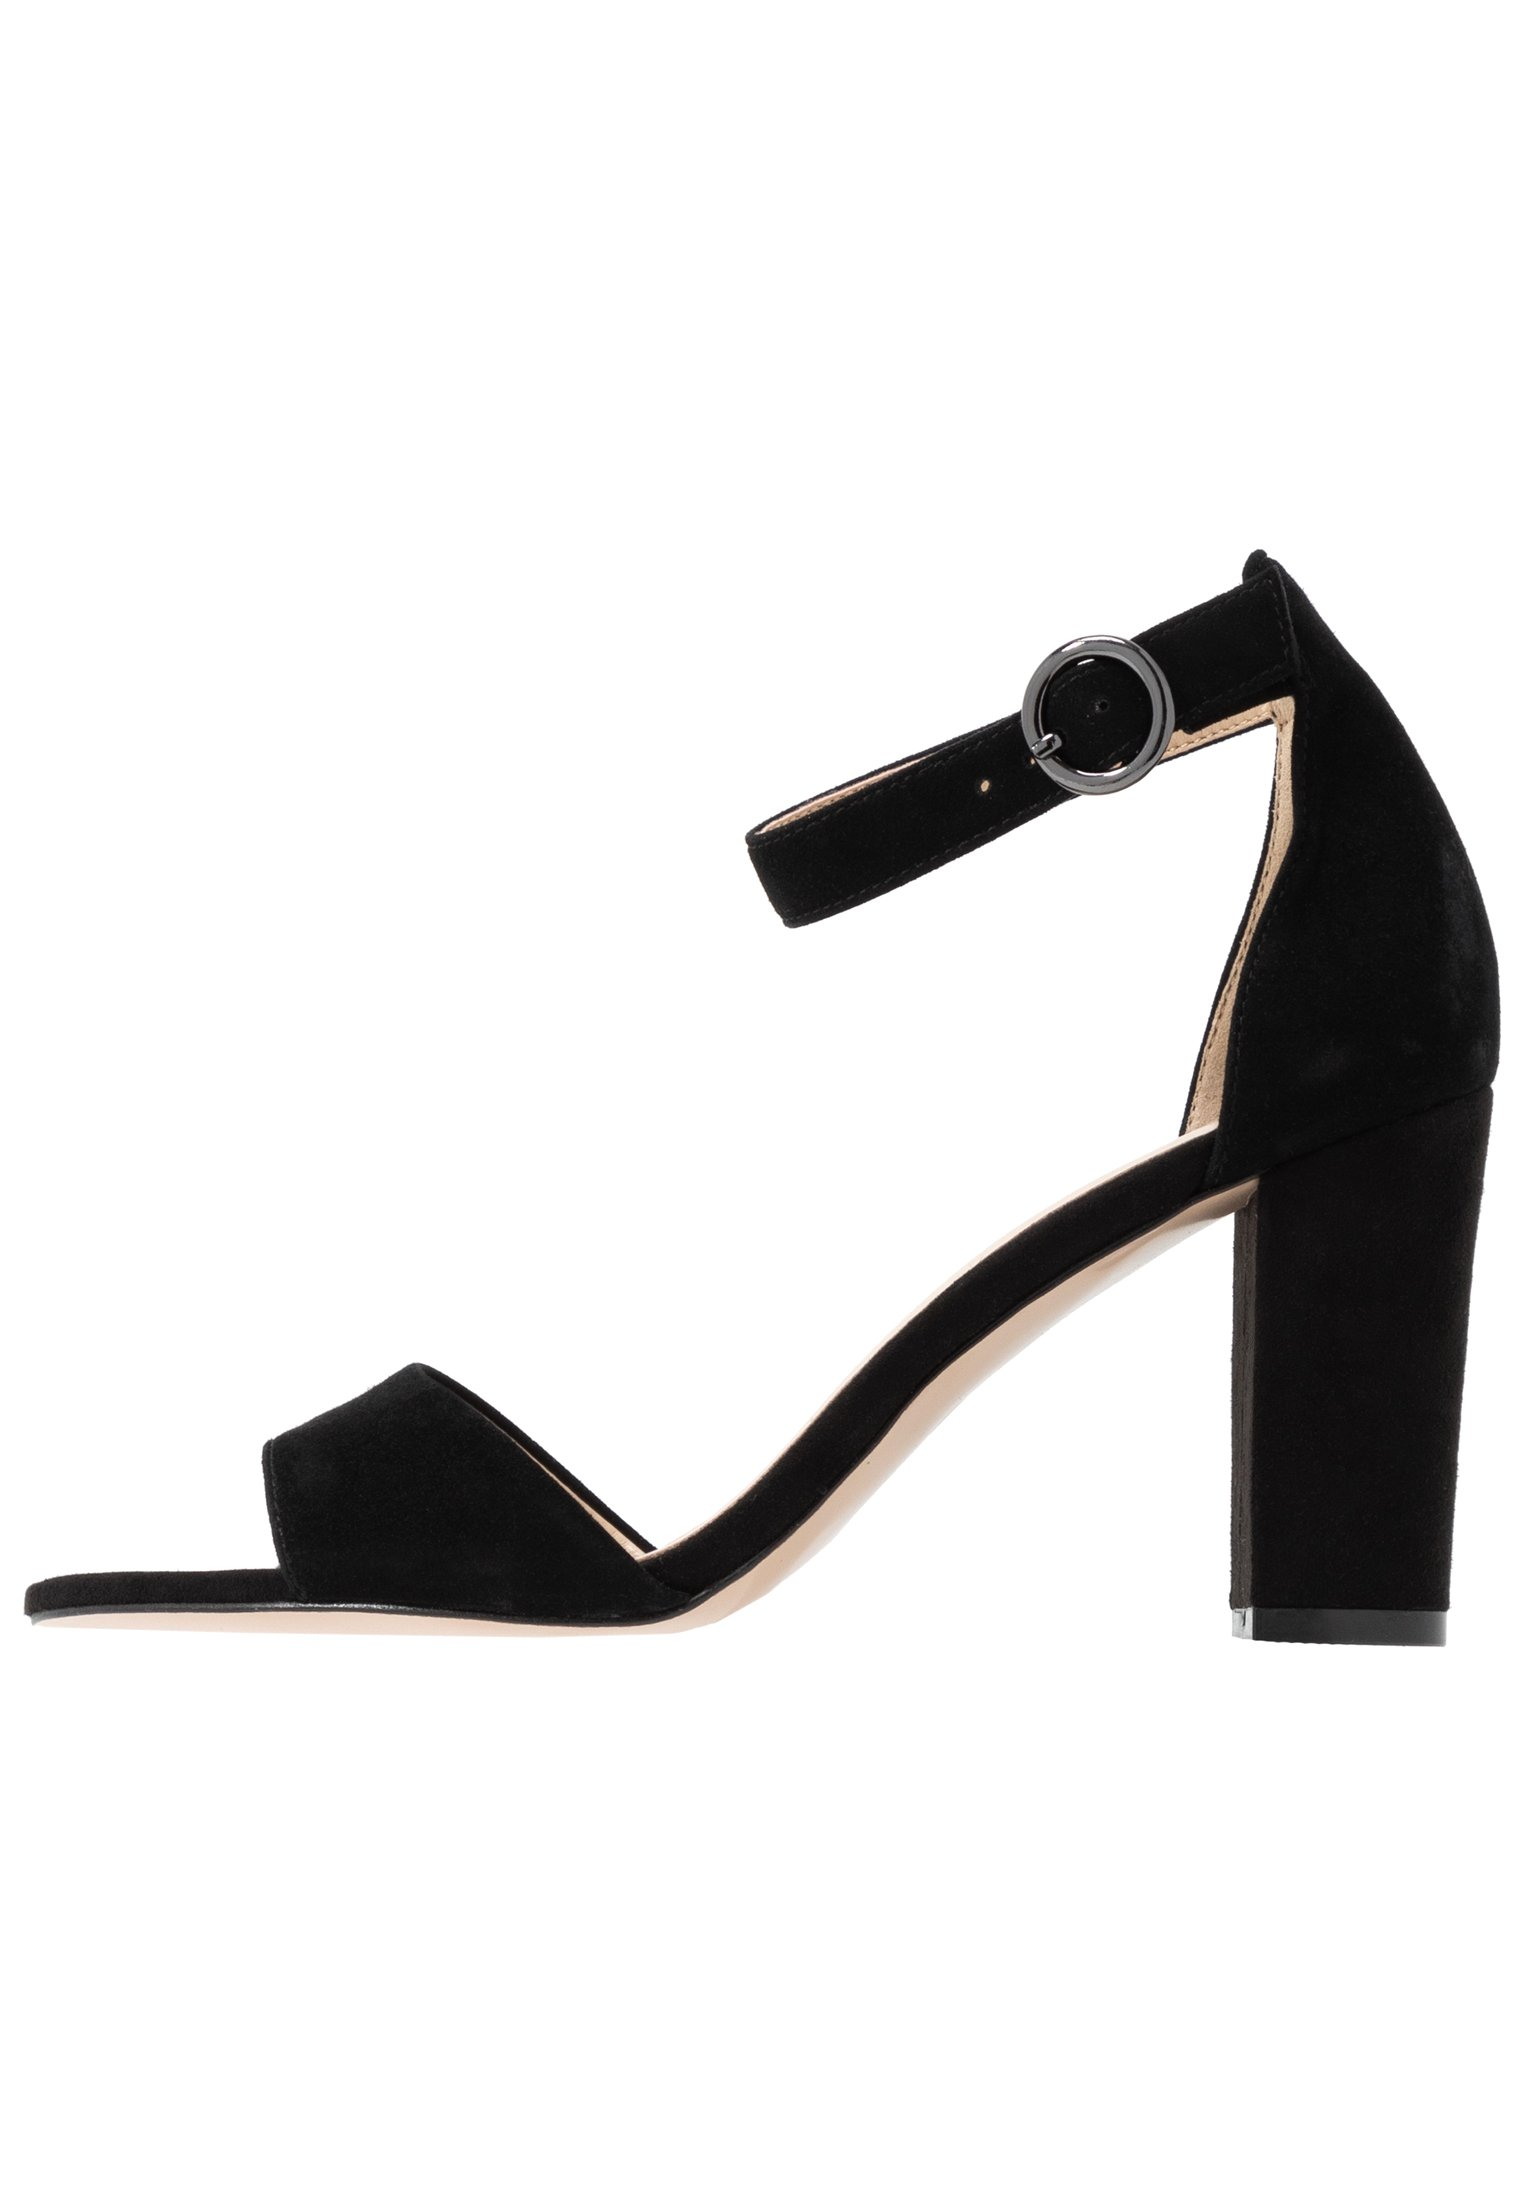 LEATHER HEELED SANDALS Sandaletter black